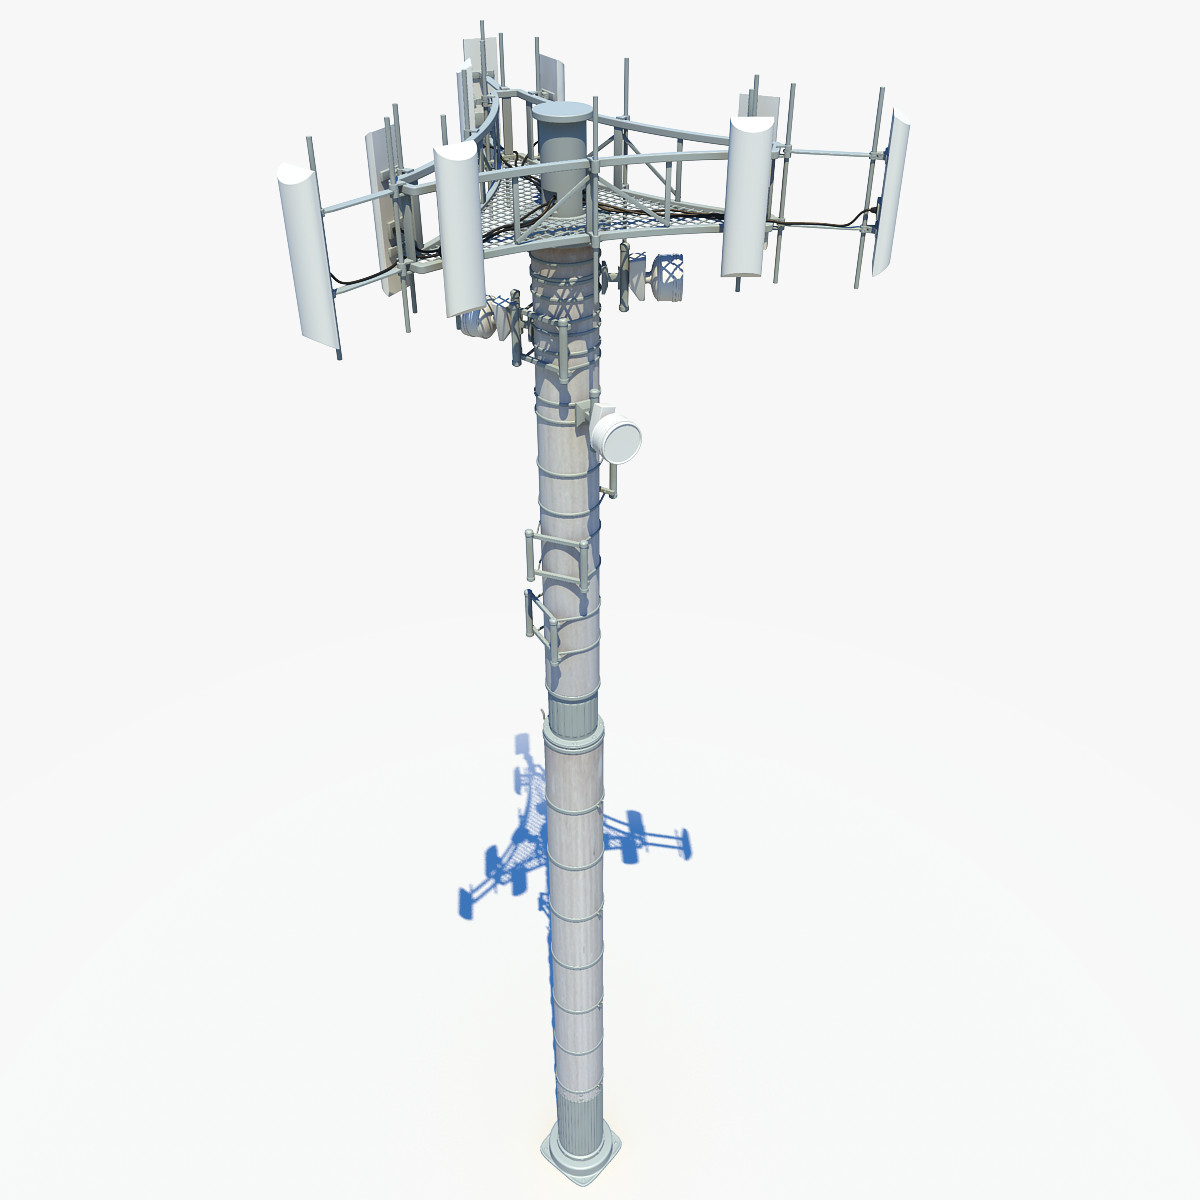 CellTower.primary.jpg